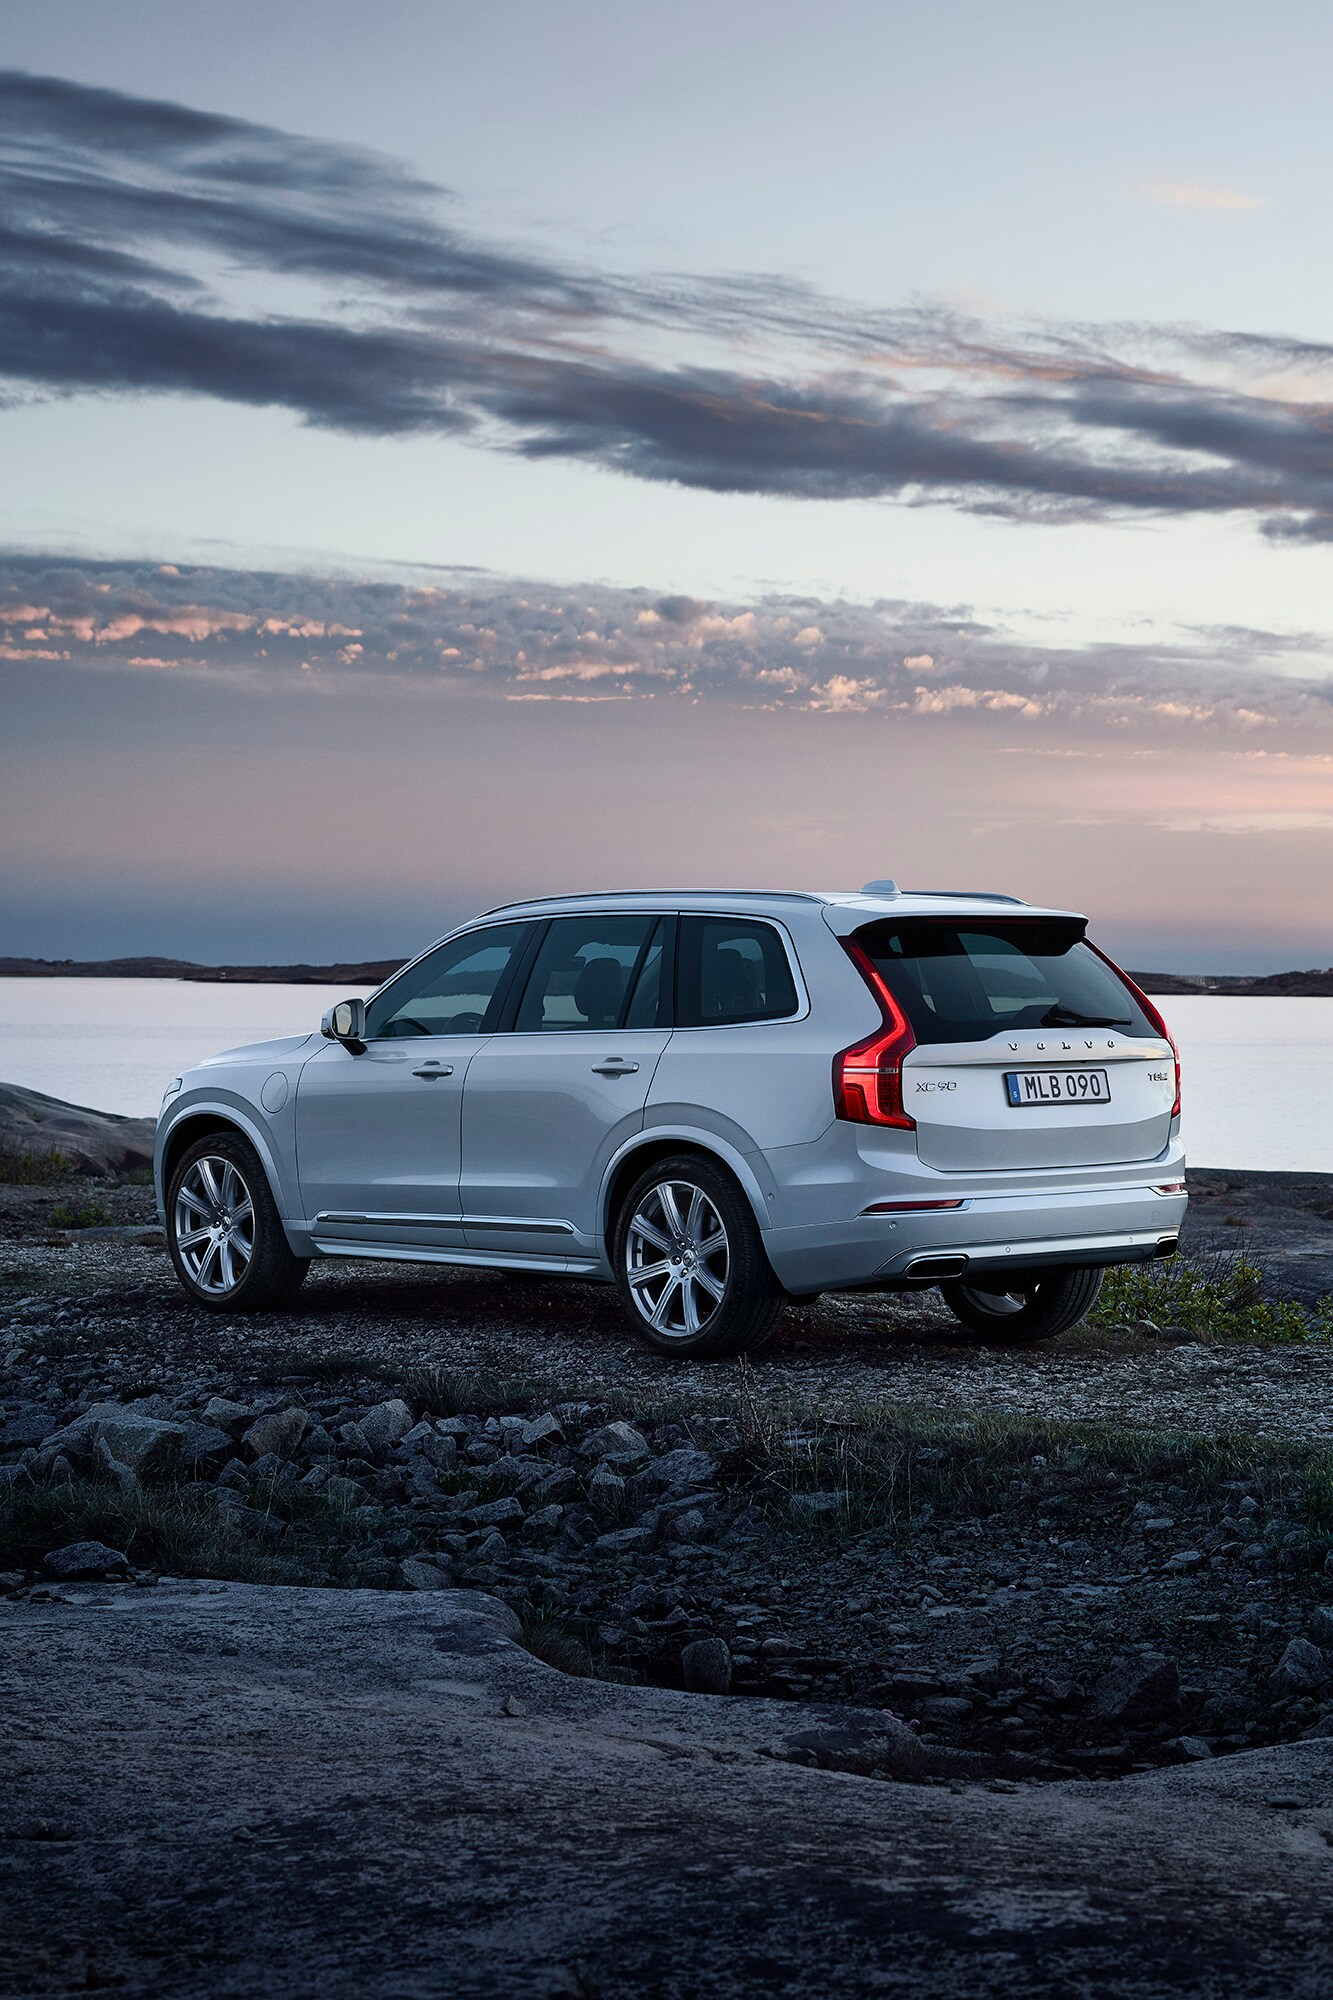 Side rear view showing the elegant Scandinavian design of the Volvo XC90